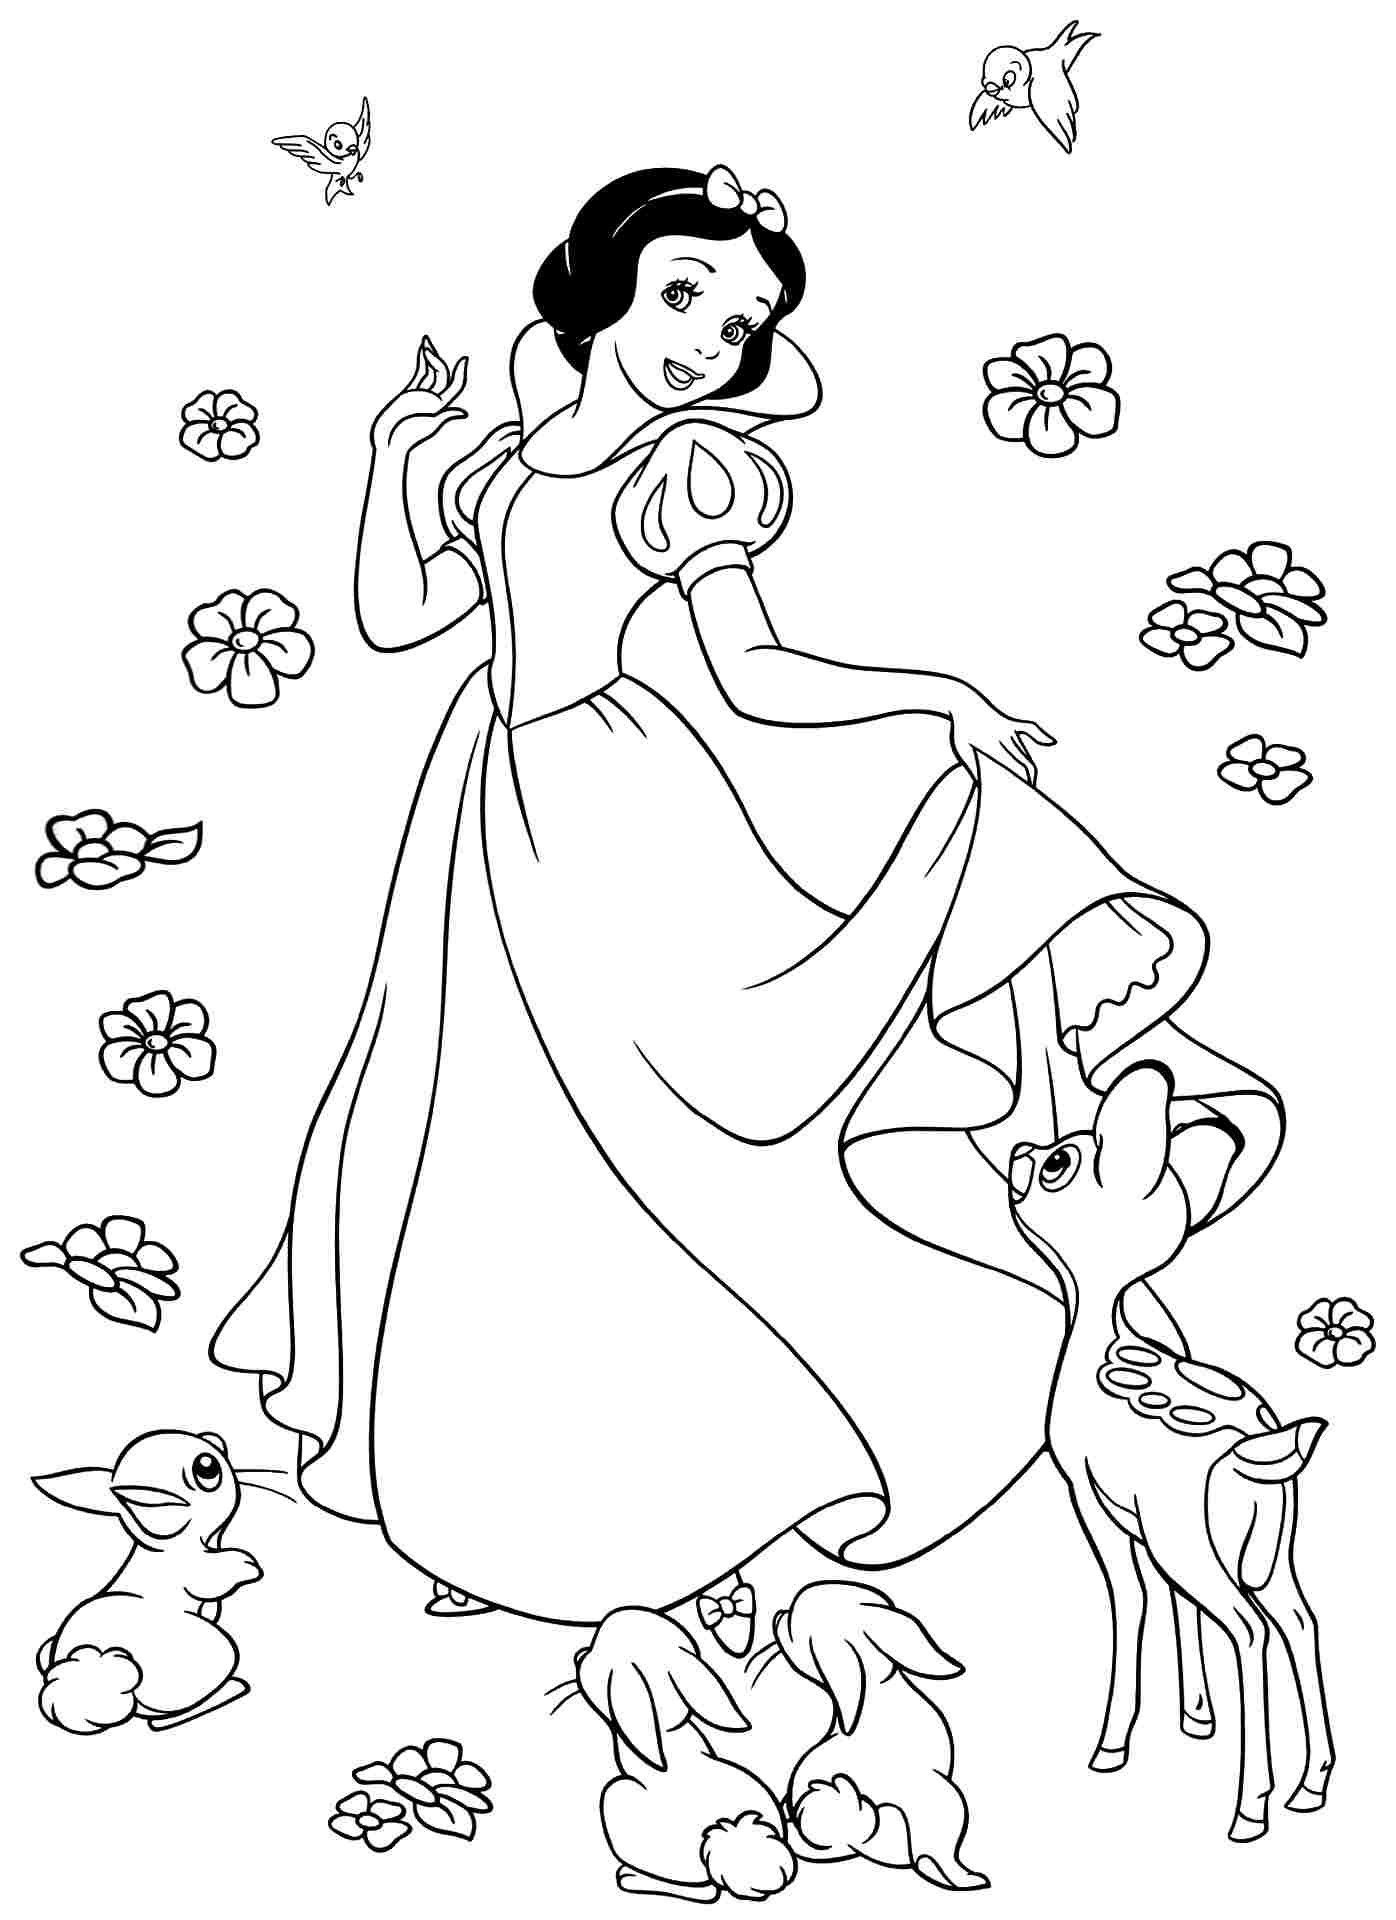 snow white coloring pages - HD1396×1920